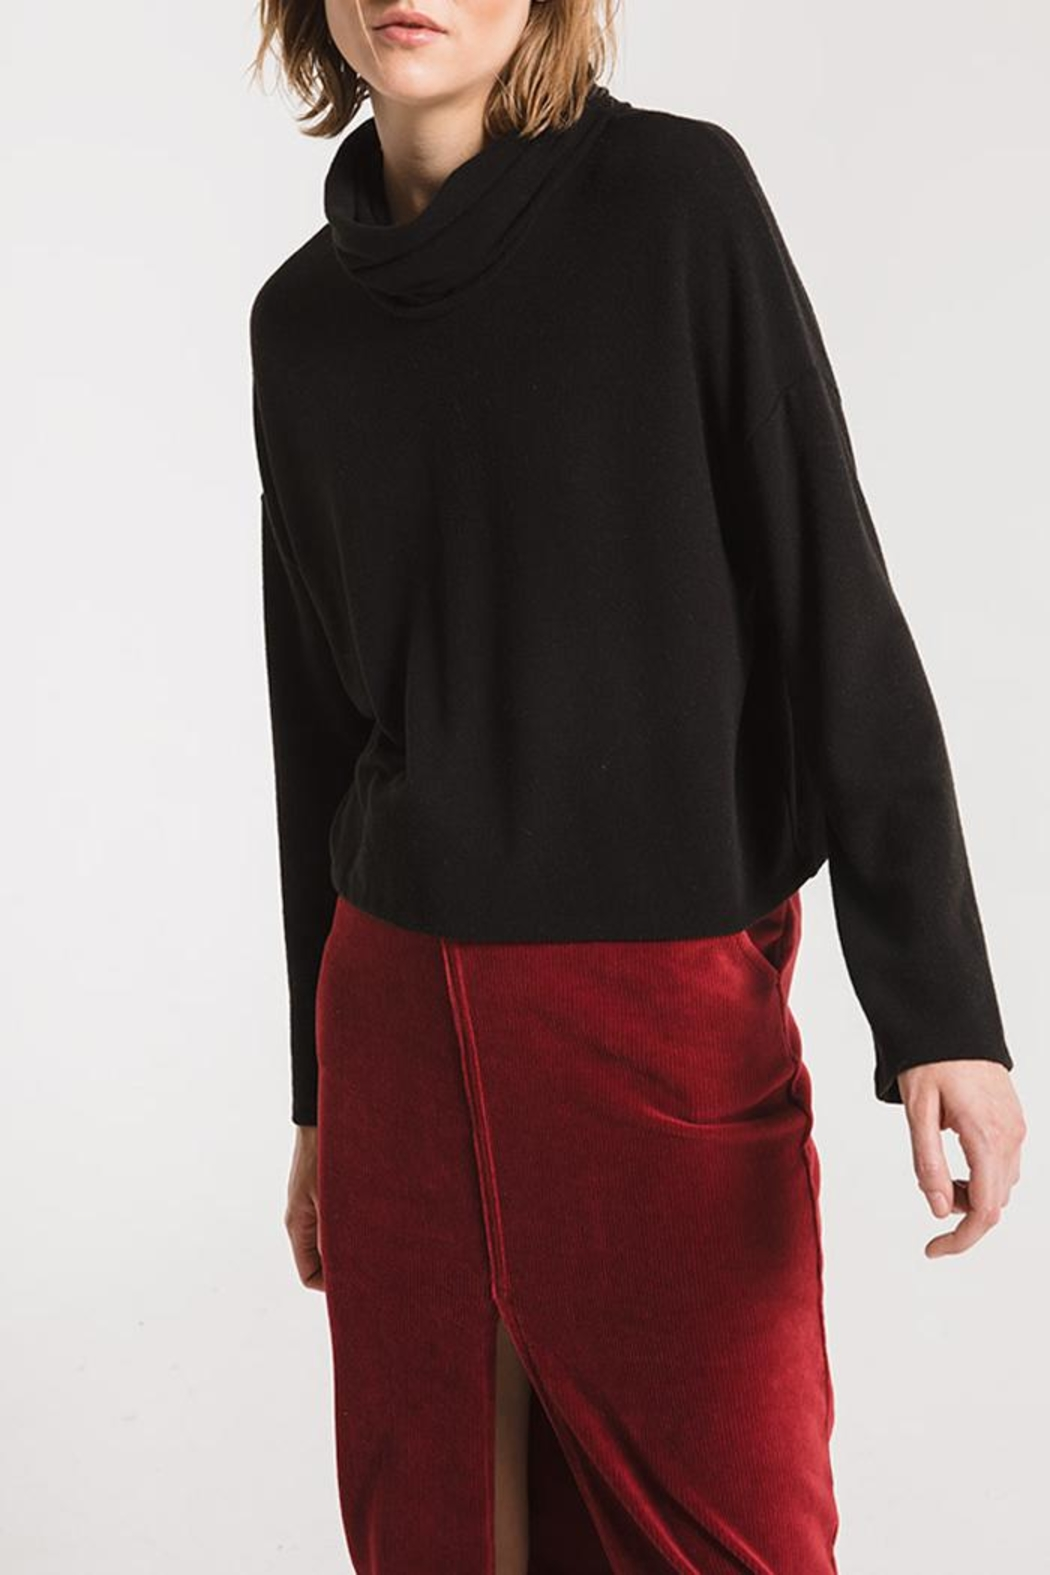 z supply Mock Neck Sweater - Front Full Image